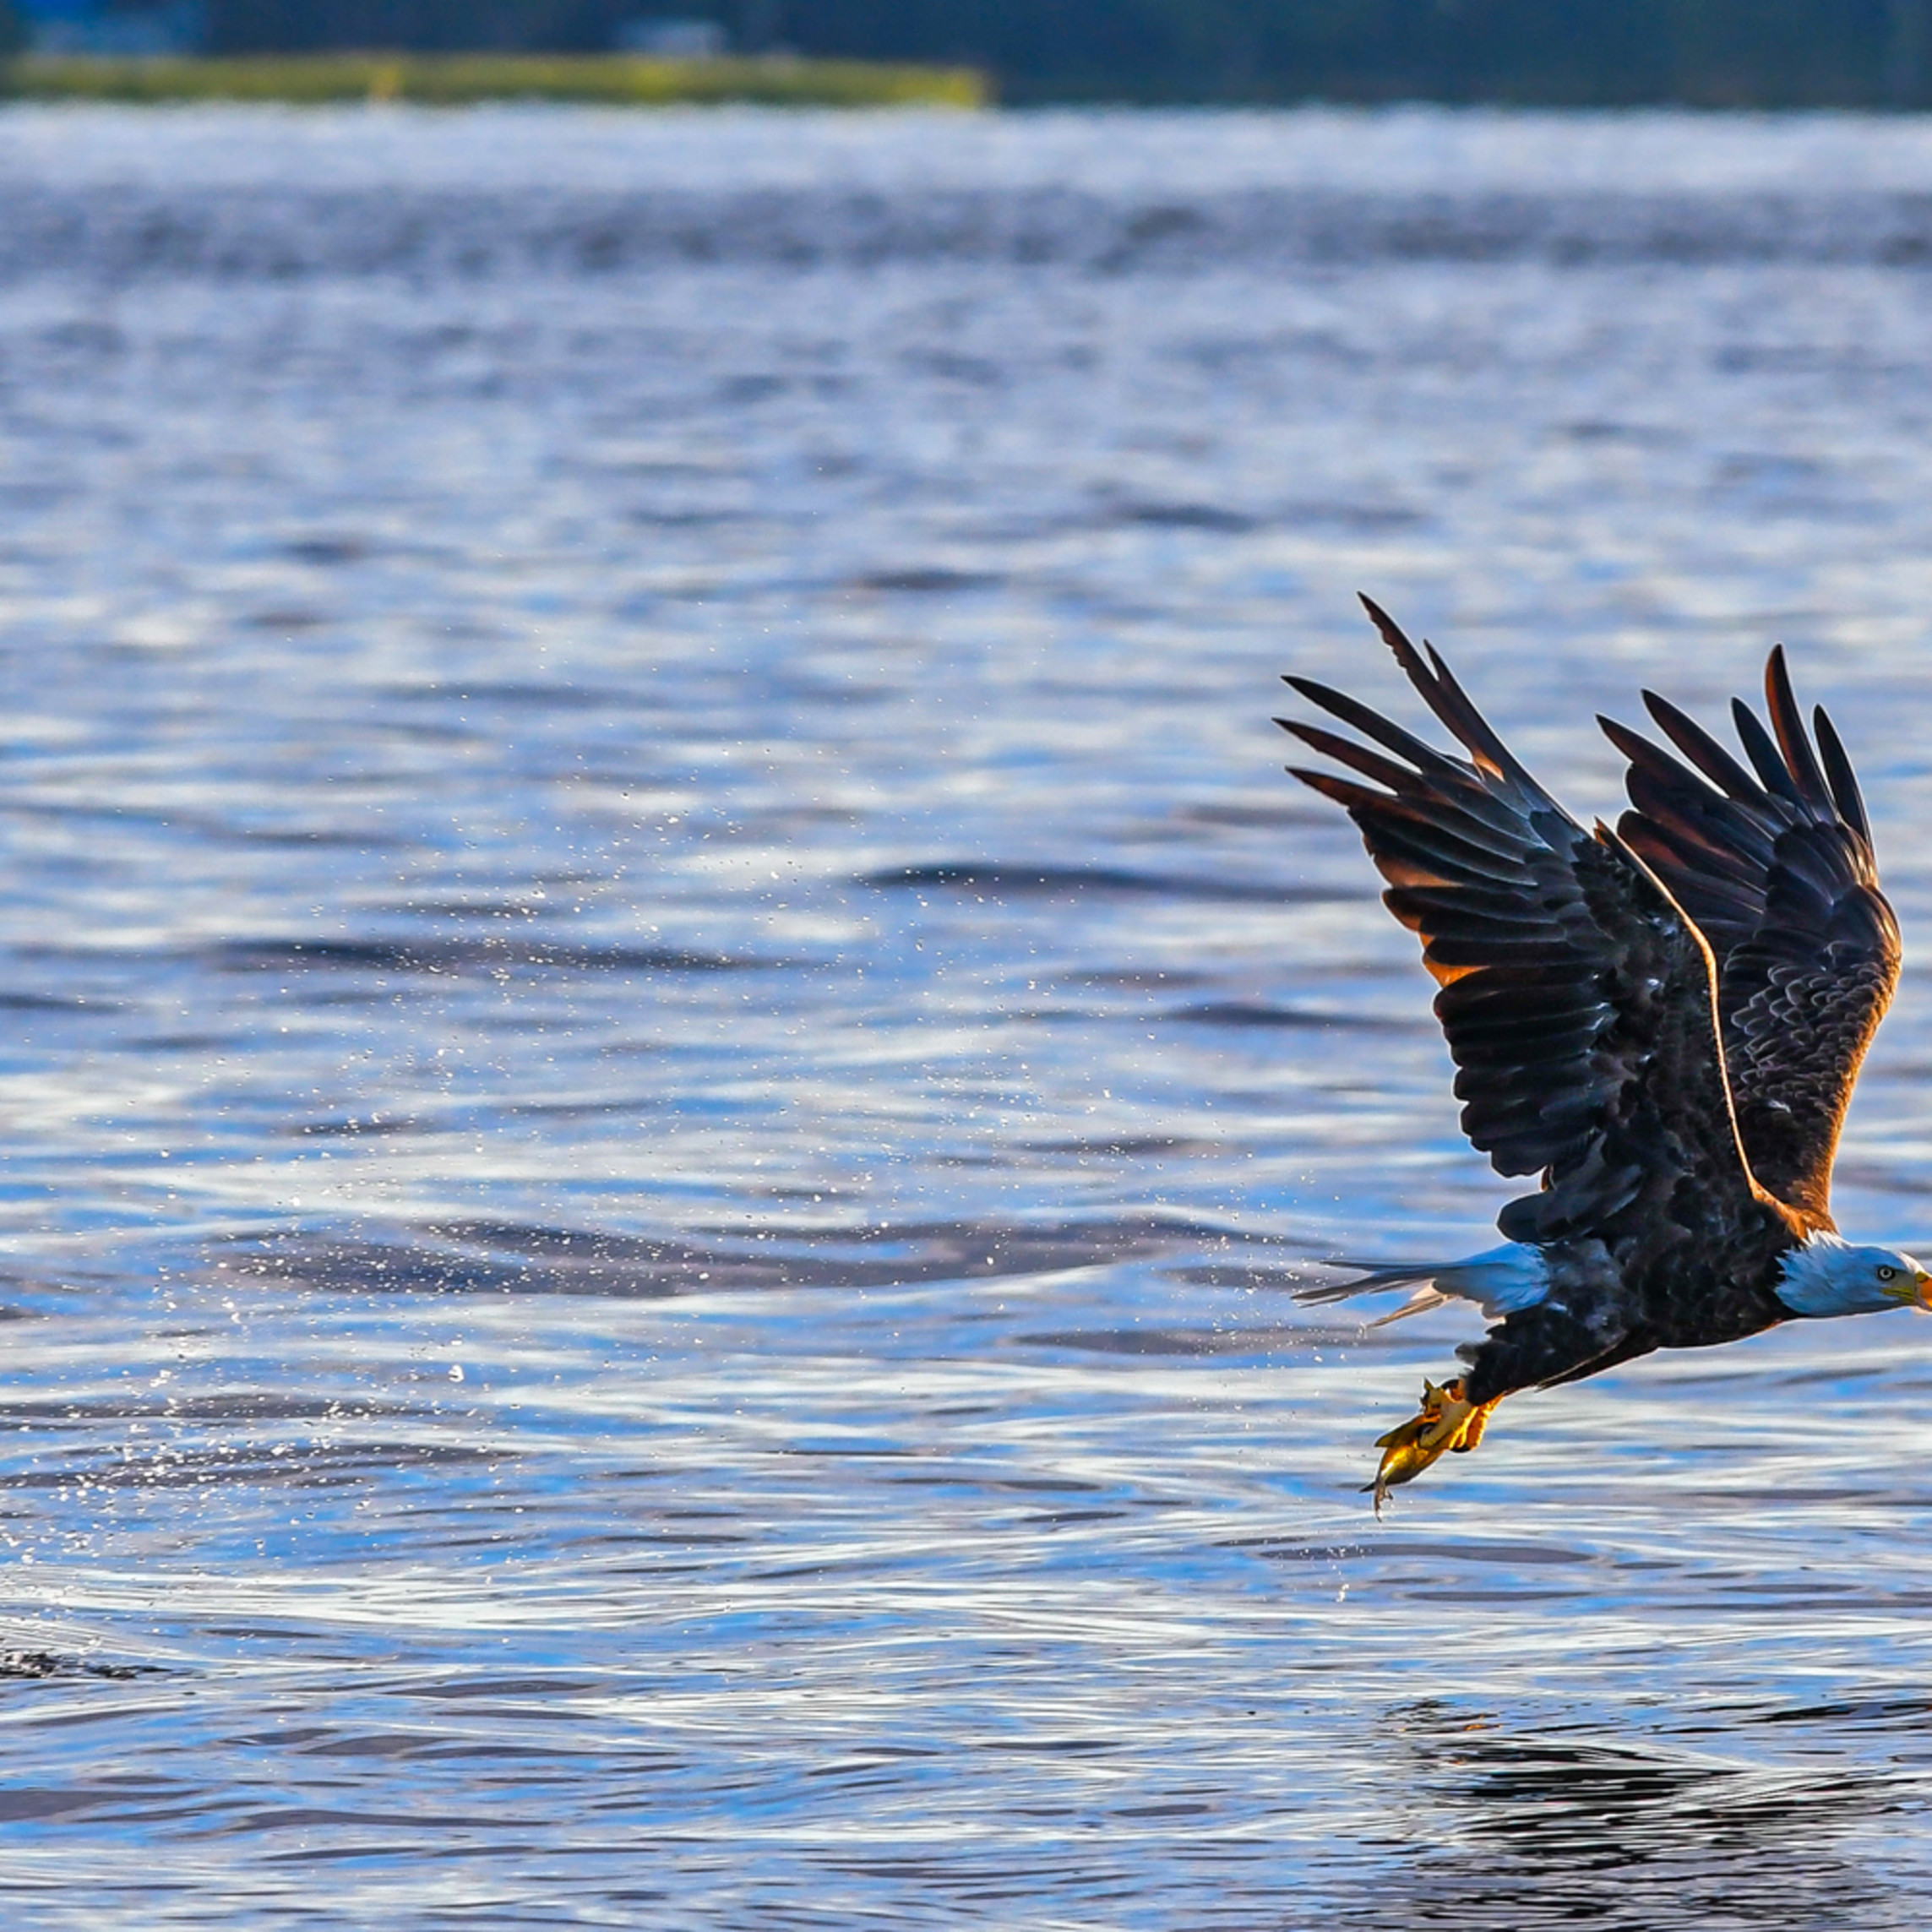 Andy crawford photography eagle catching fish 6 n6zrpp